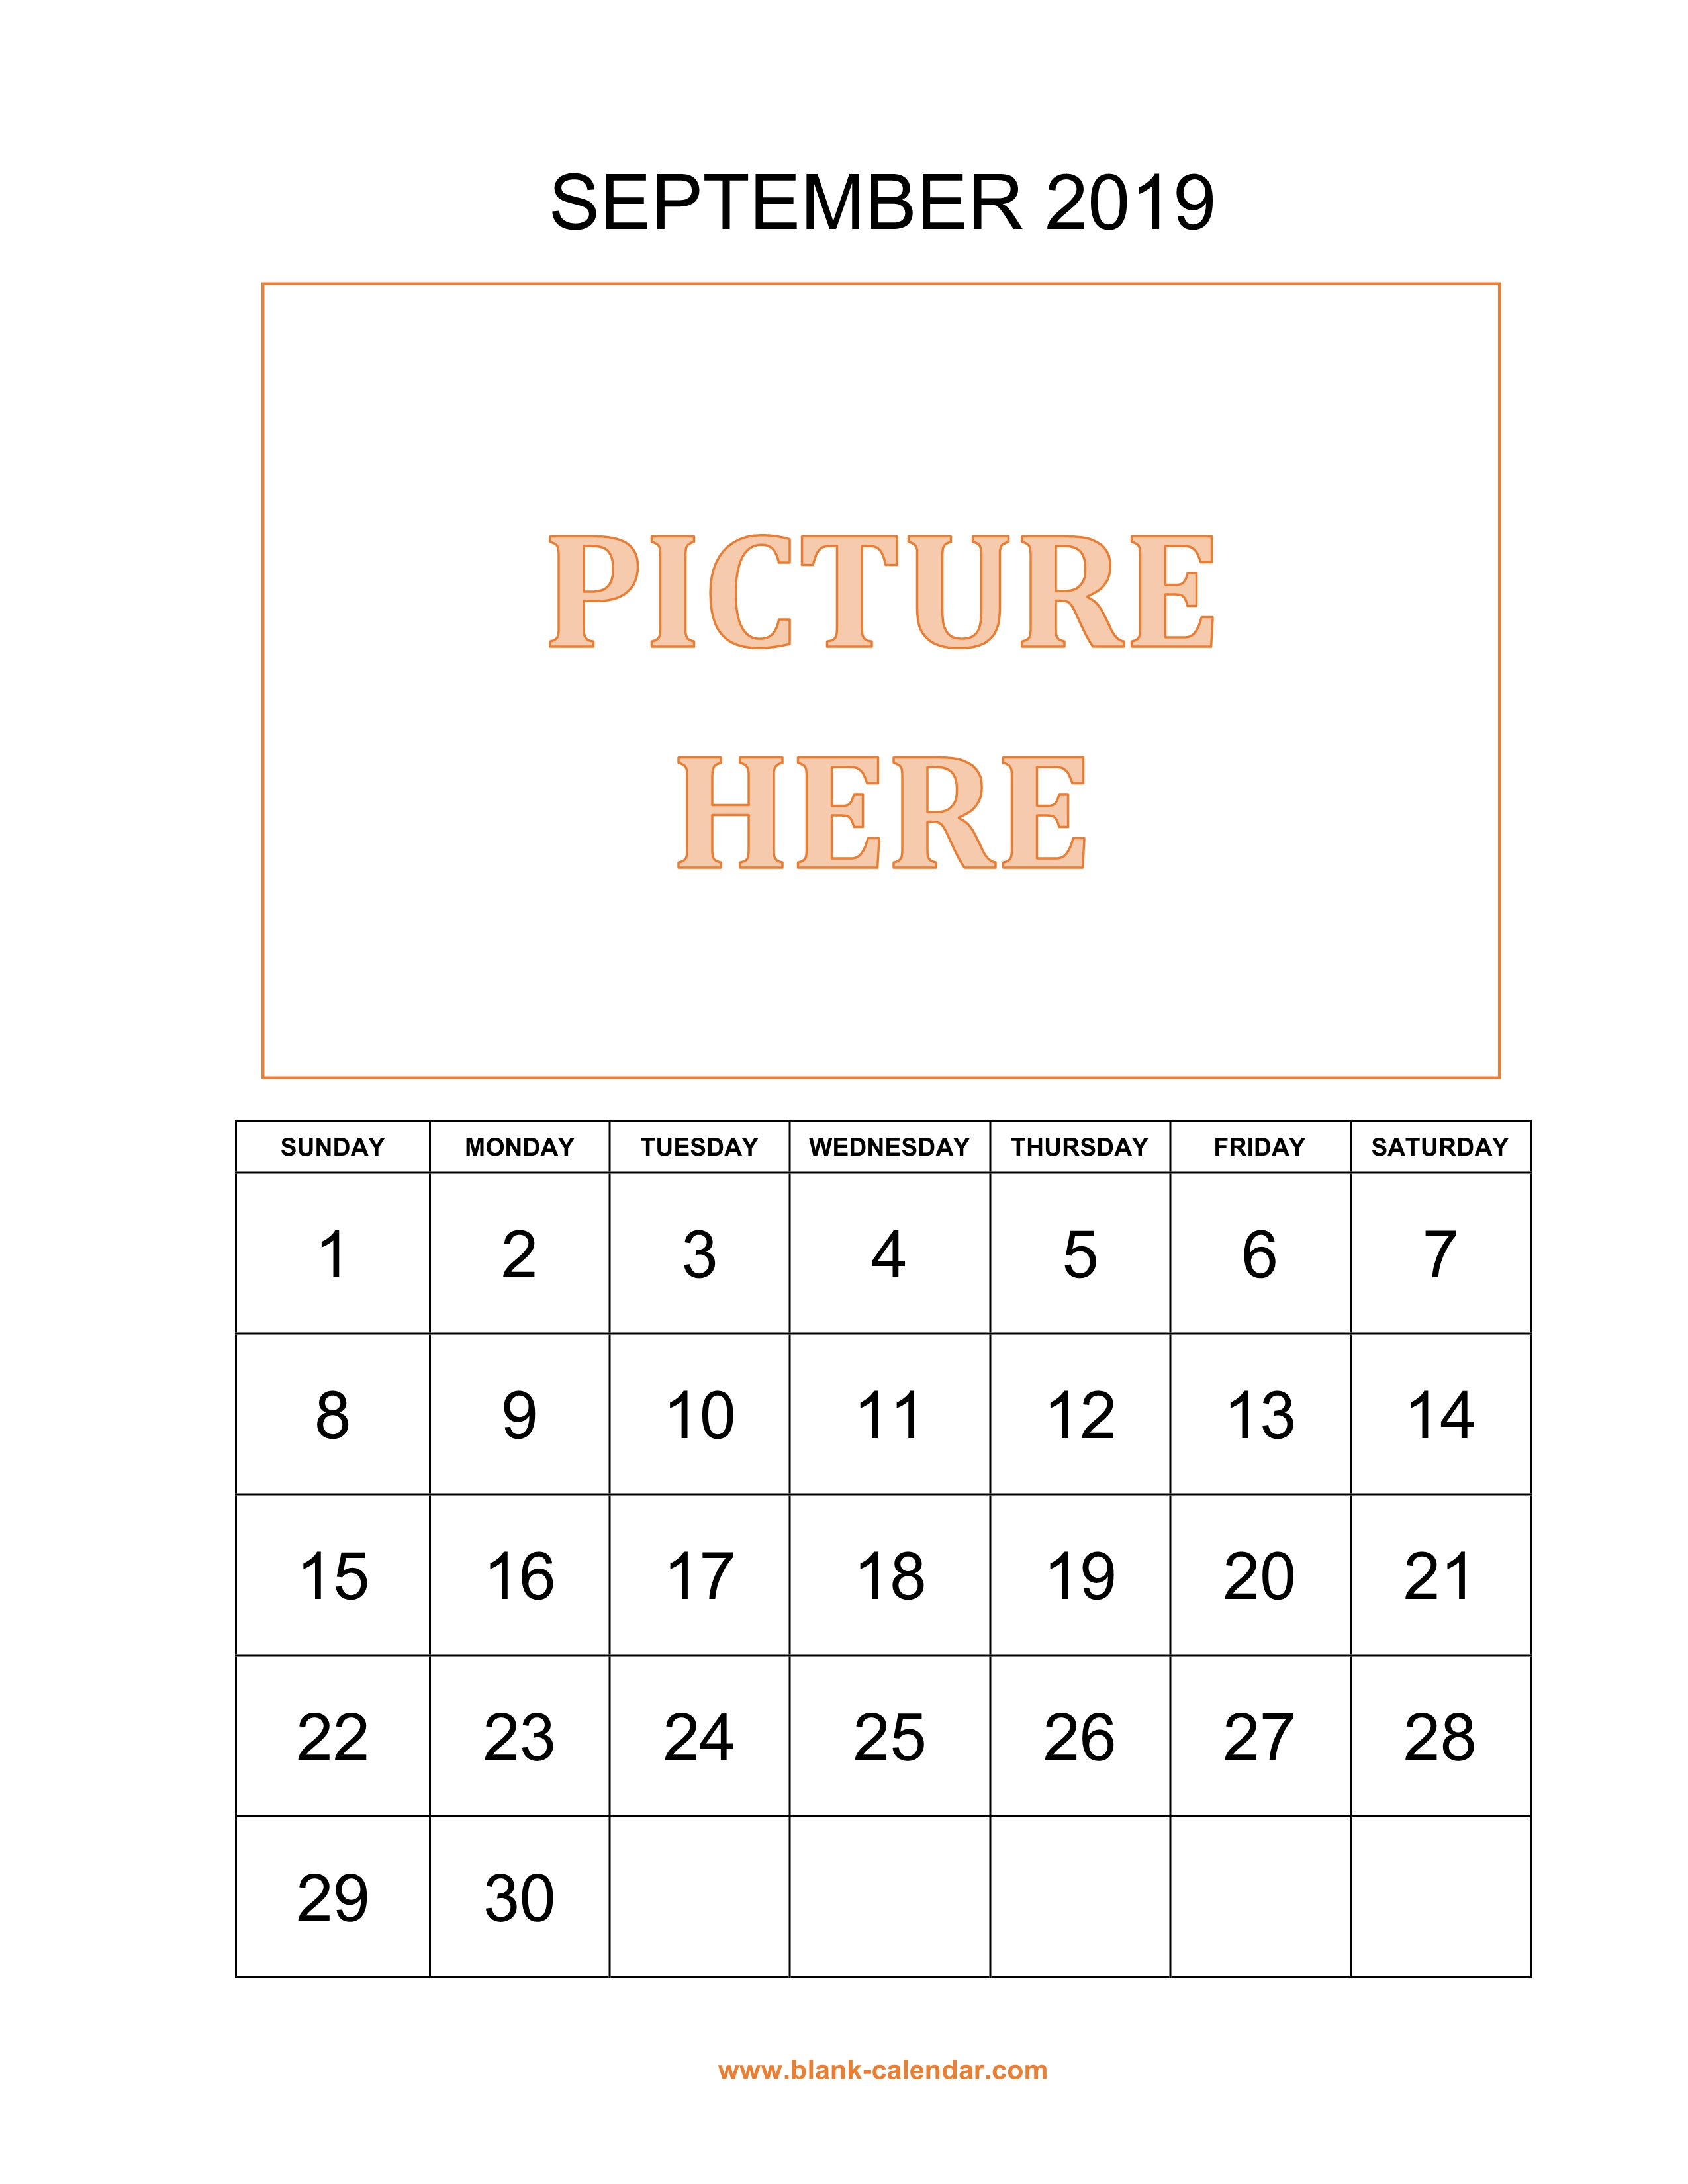 Free Download Printable September 2019 Calendar Pictures Can Be